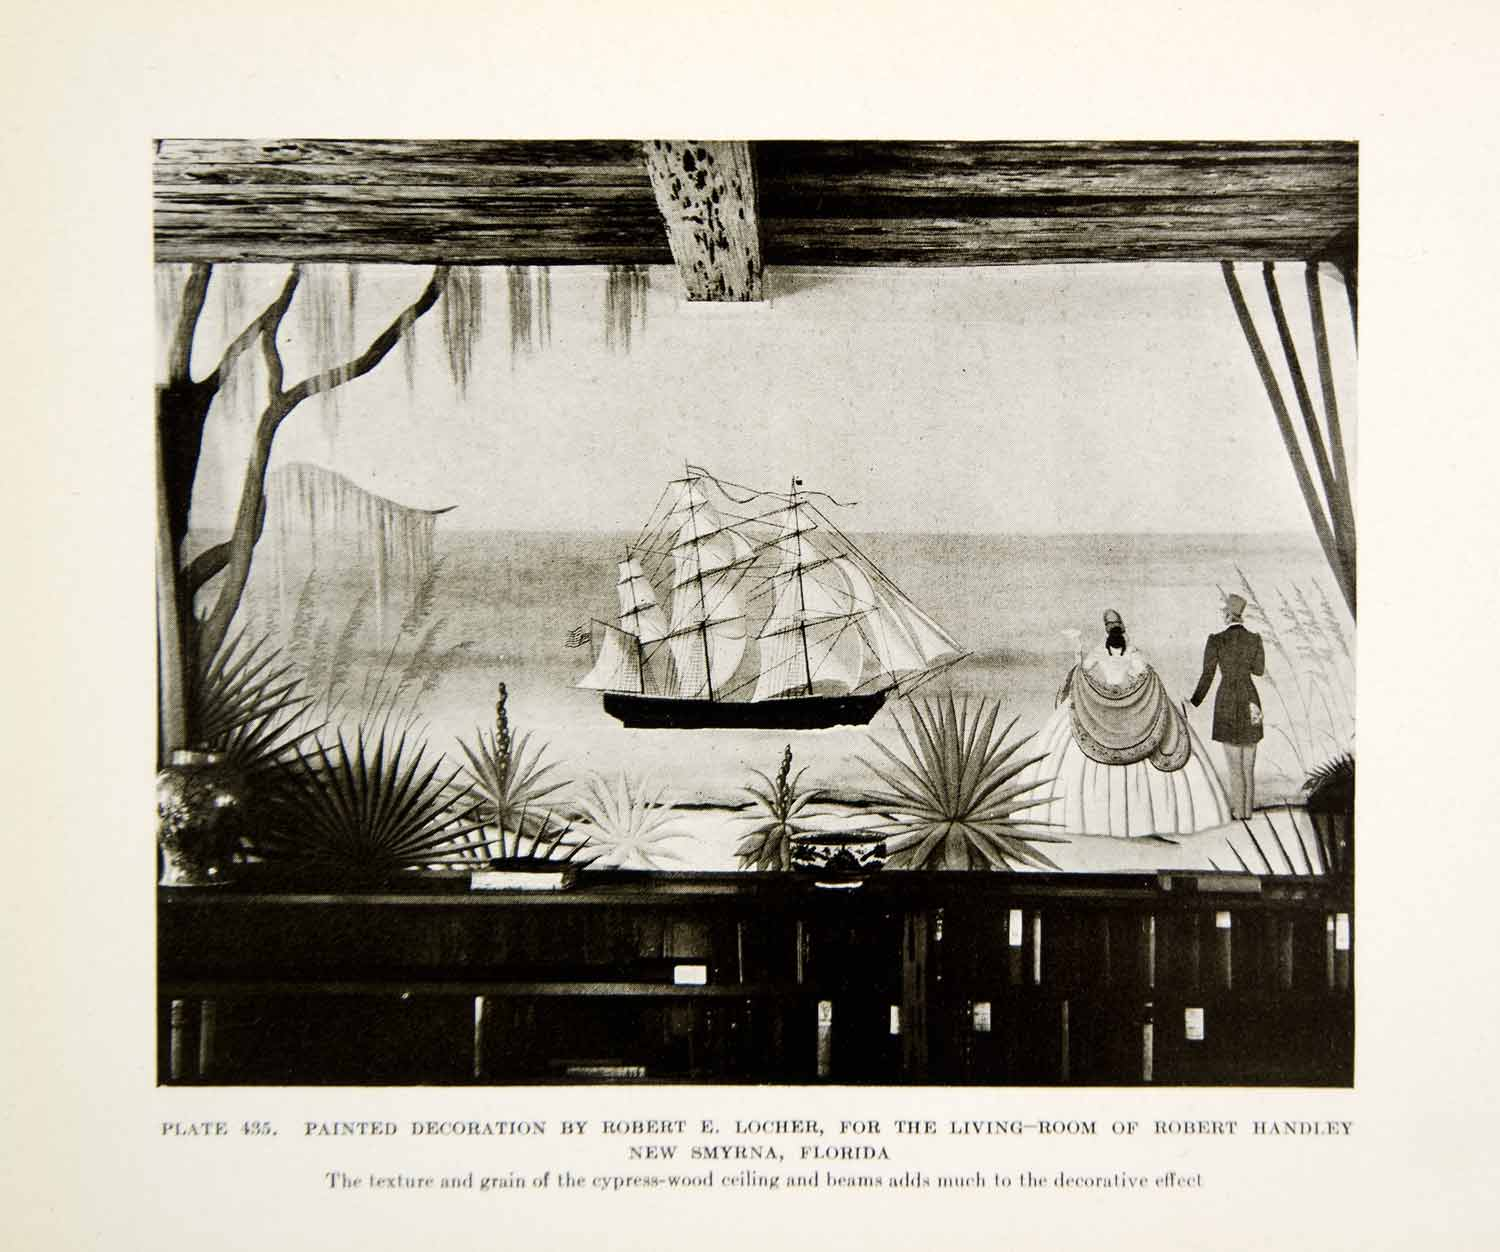 1926 Print Ship Interior Decoration Design Robert E Loucher Furniture Sail XDG6